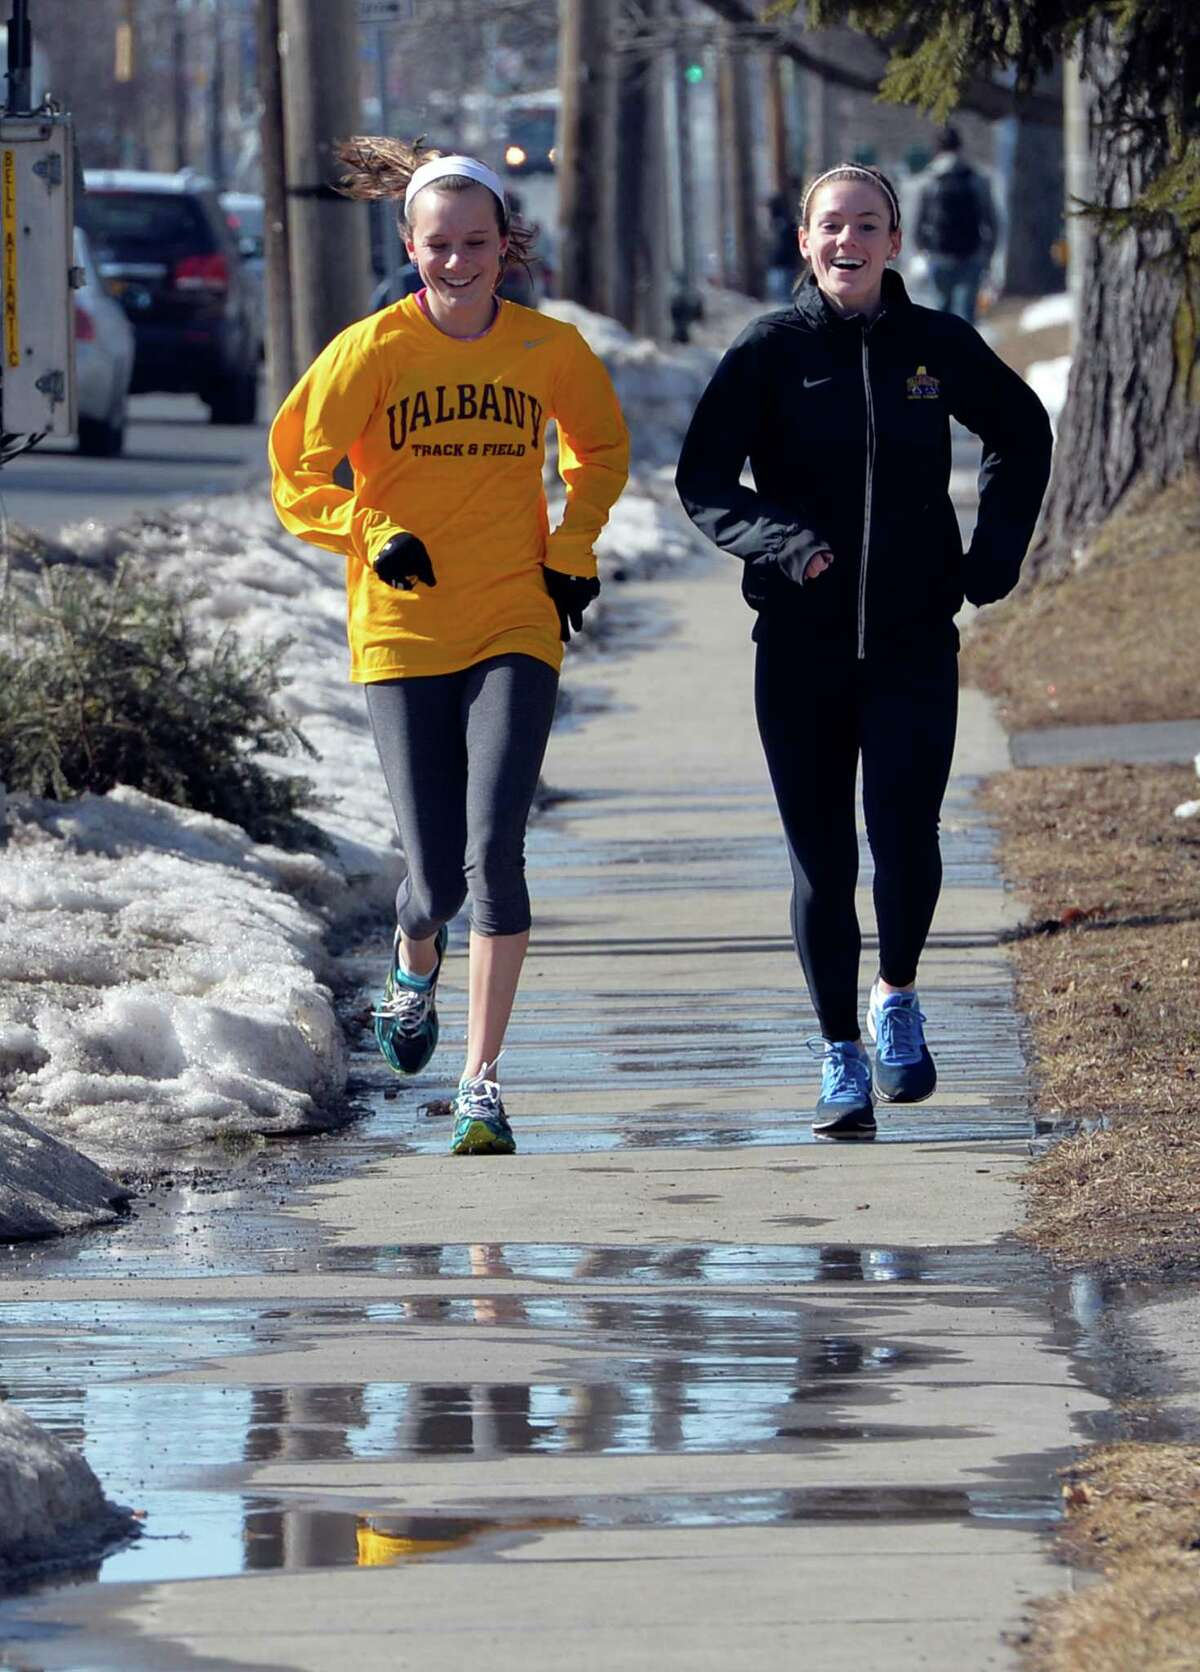 University at Albany track team members Hanna Smith, left, and Molly Pezzulo, right, are out for a practice run and some rare rays of sun as the run down Western Avenue Friday afternoon March 7, 2014 in Albany, N.Y. (Skip Dickstein / Times Union)